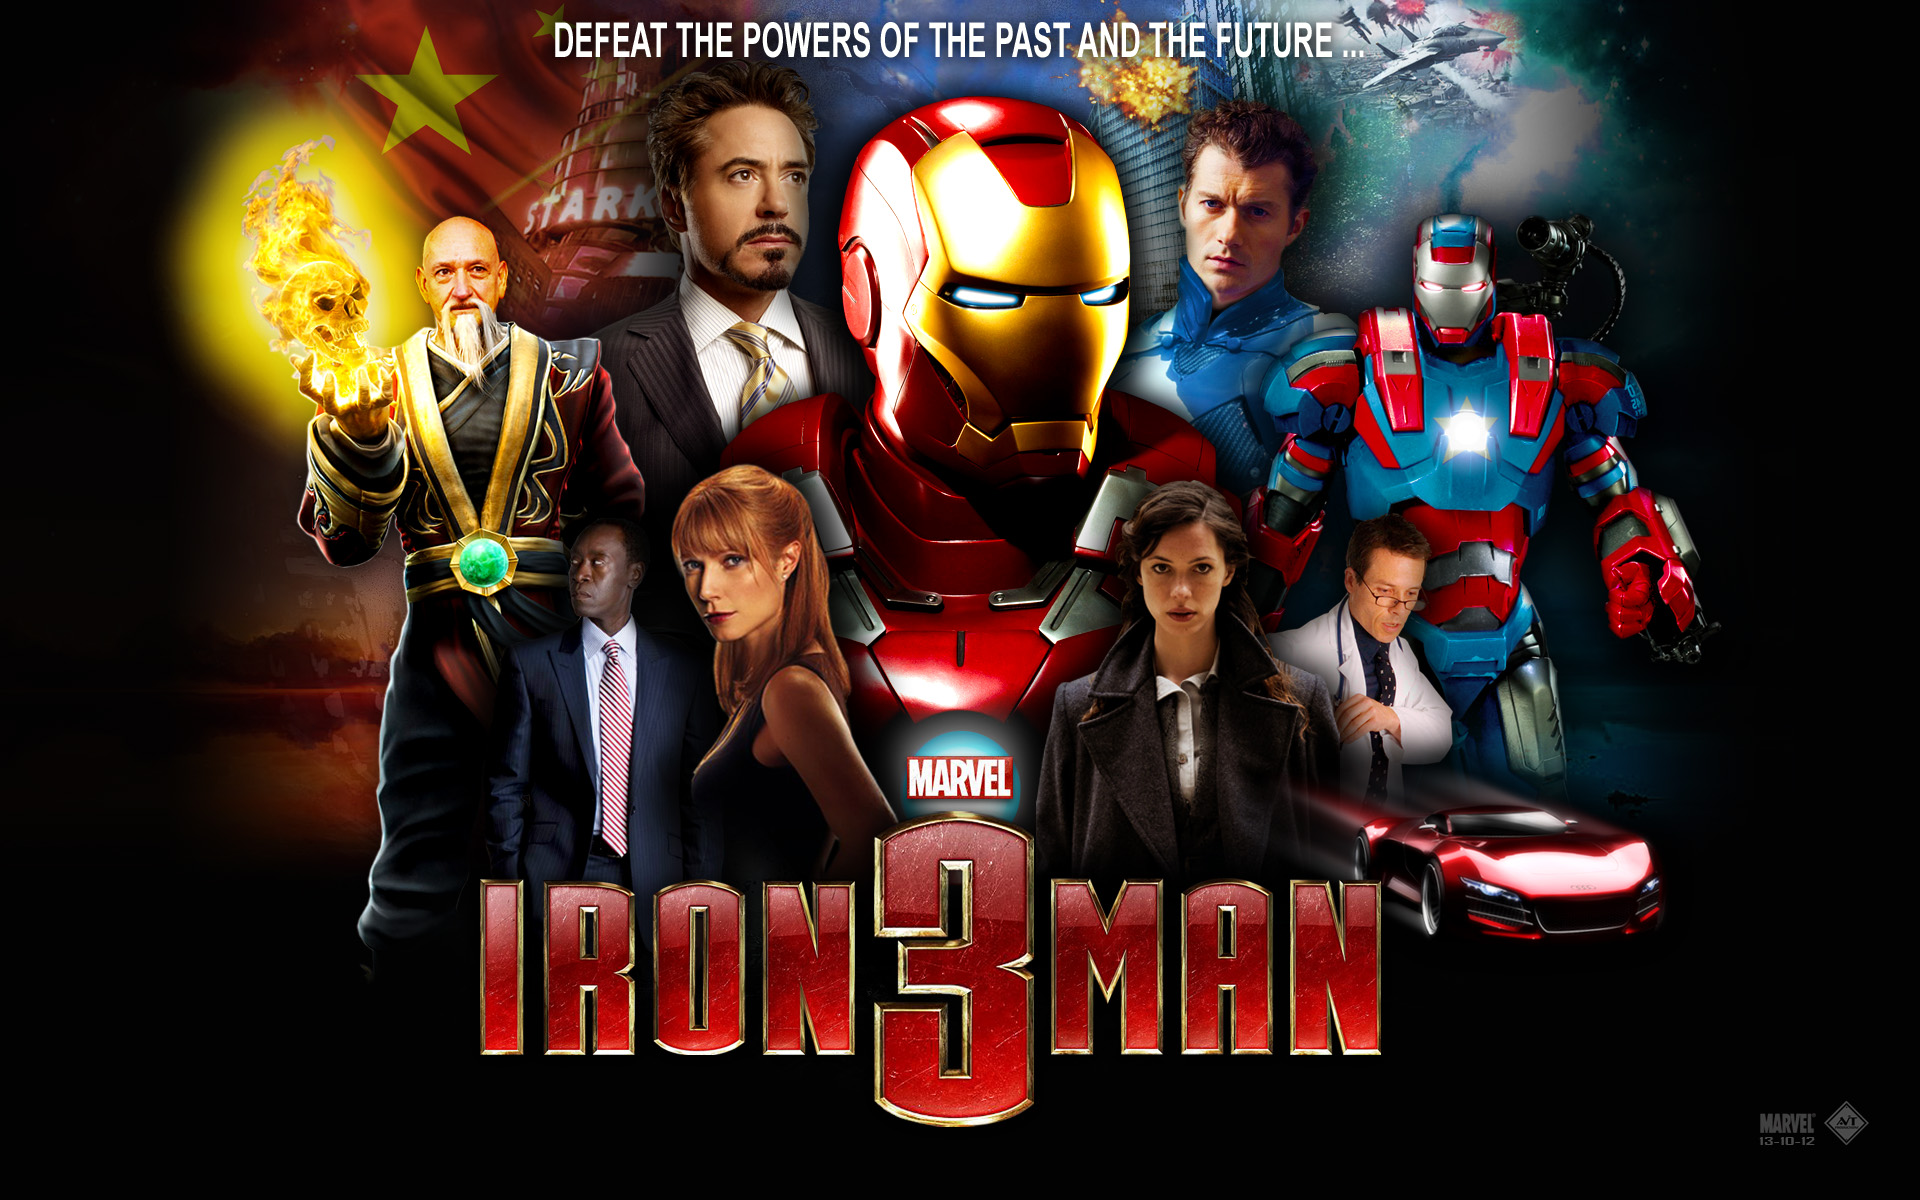 Free iron man 3 live wallpaper 1 apk download for android | getjar.